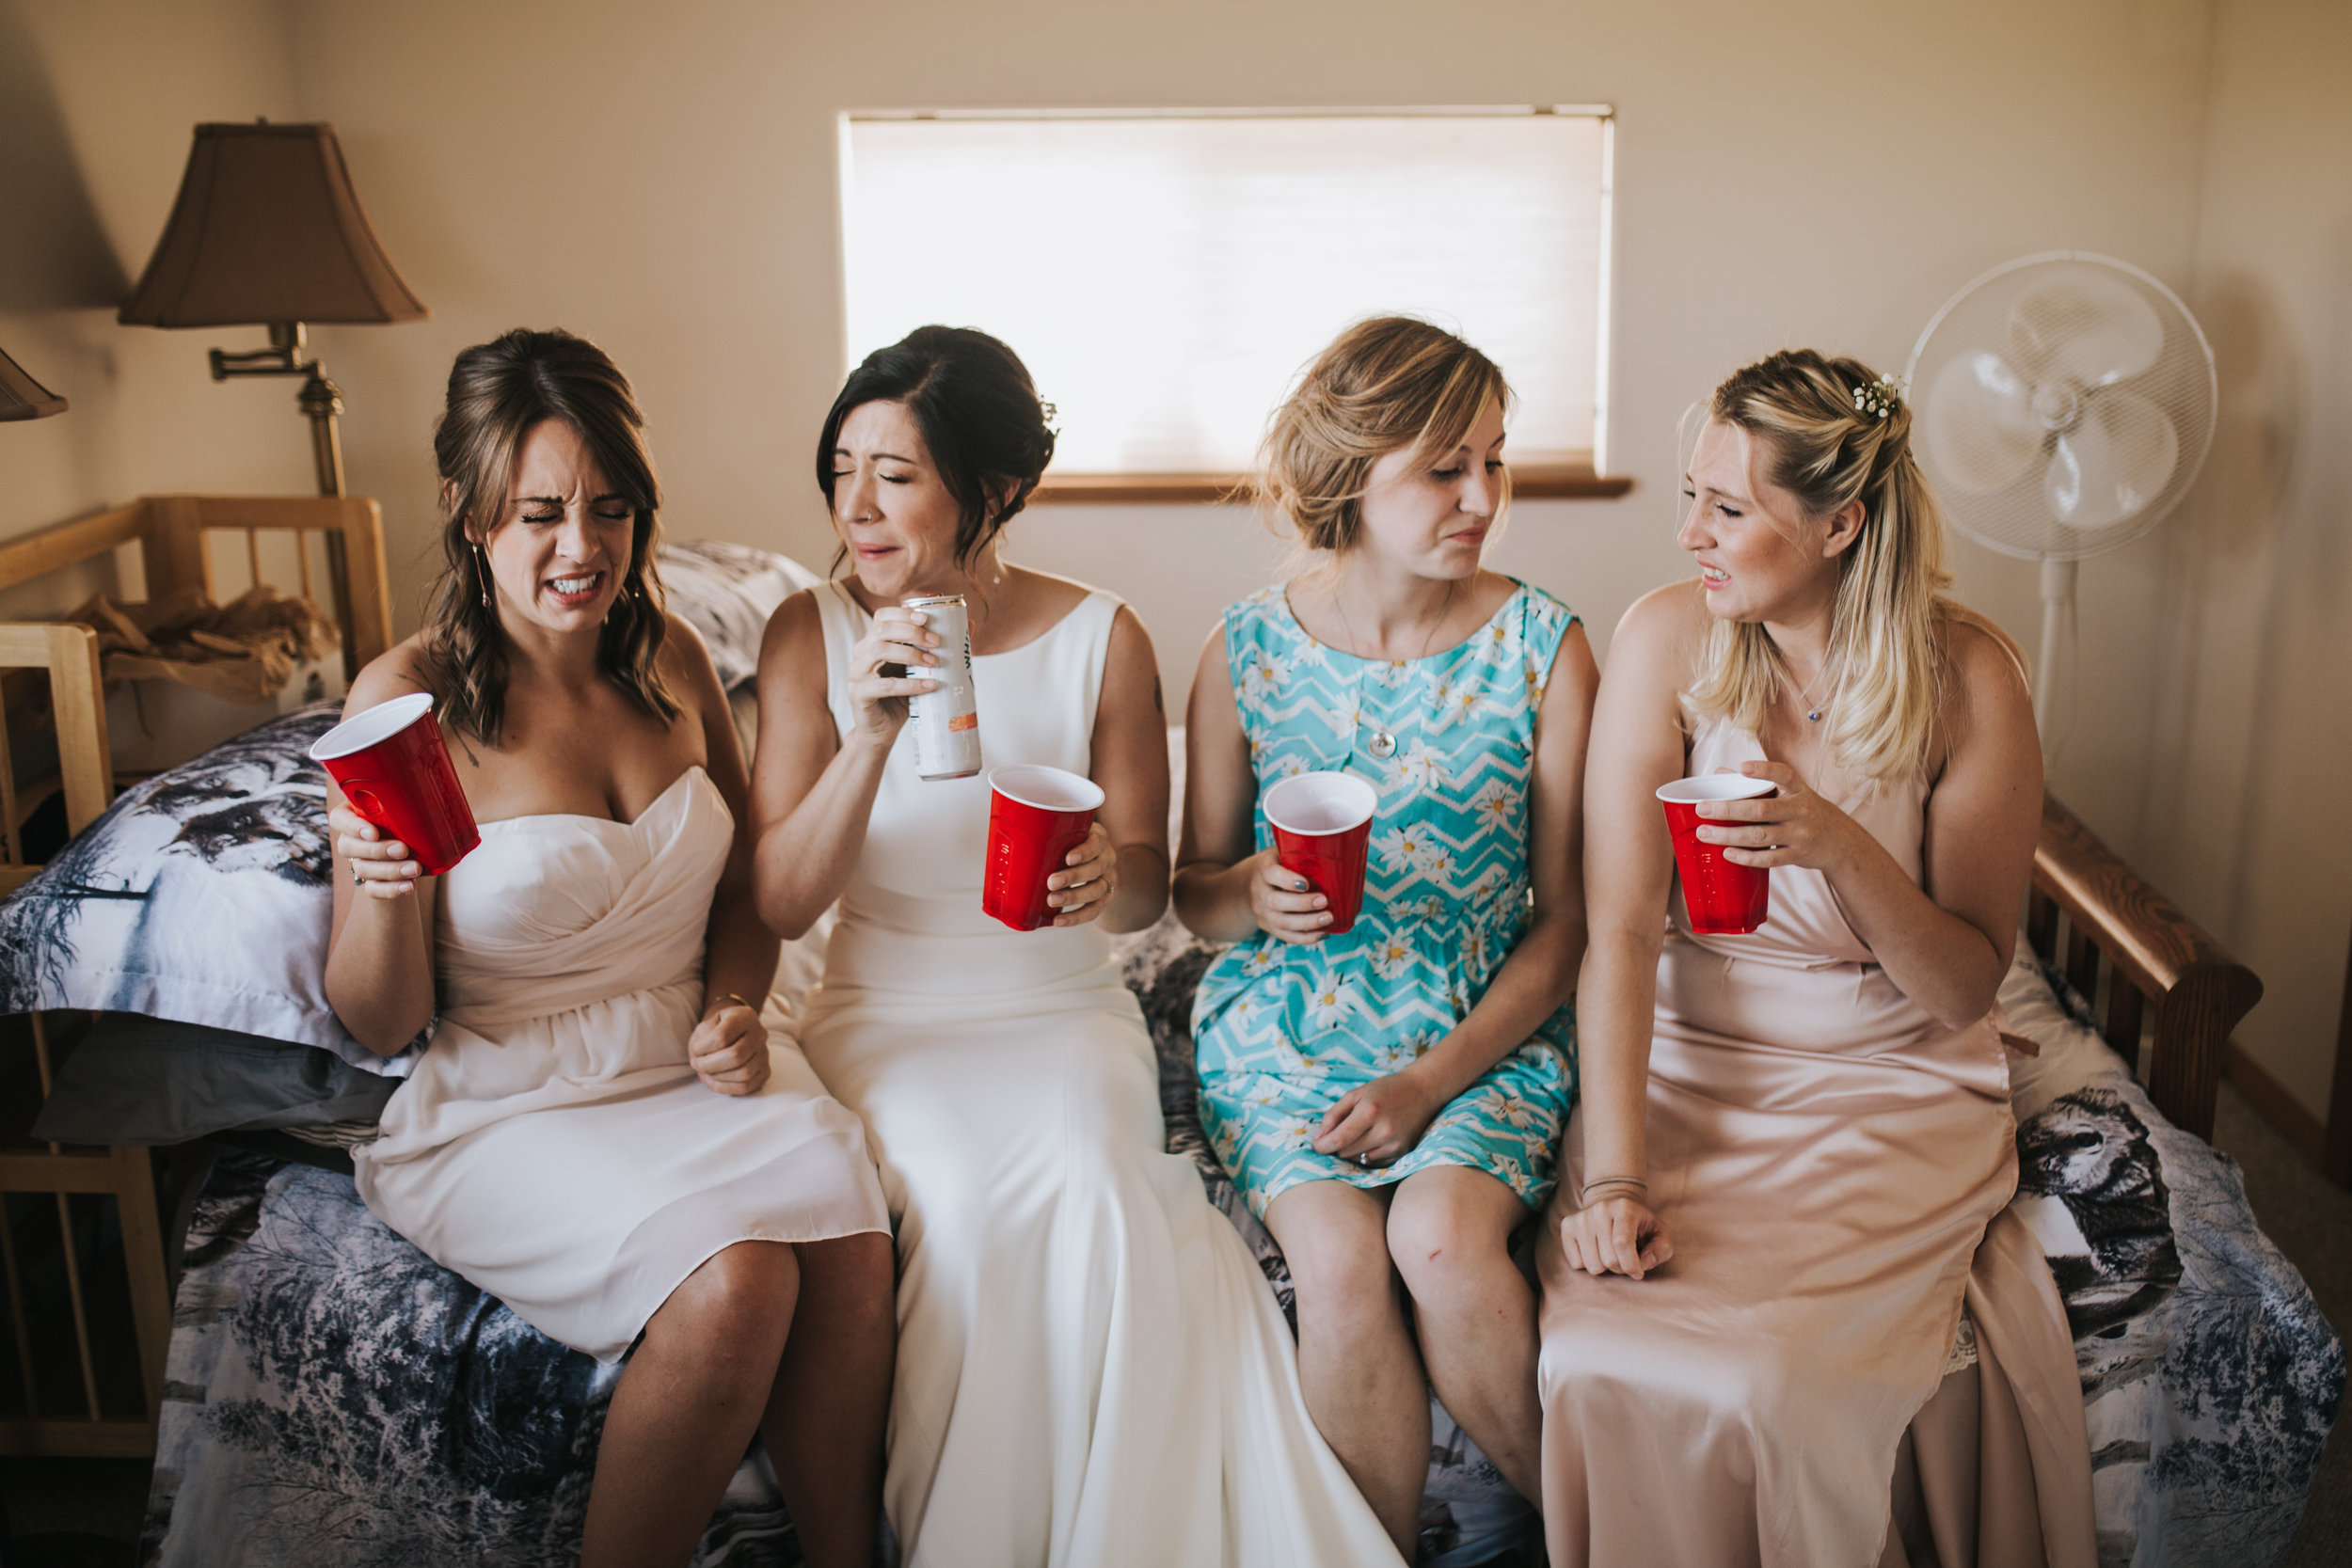 Bridesmaids Shots while Getting ready